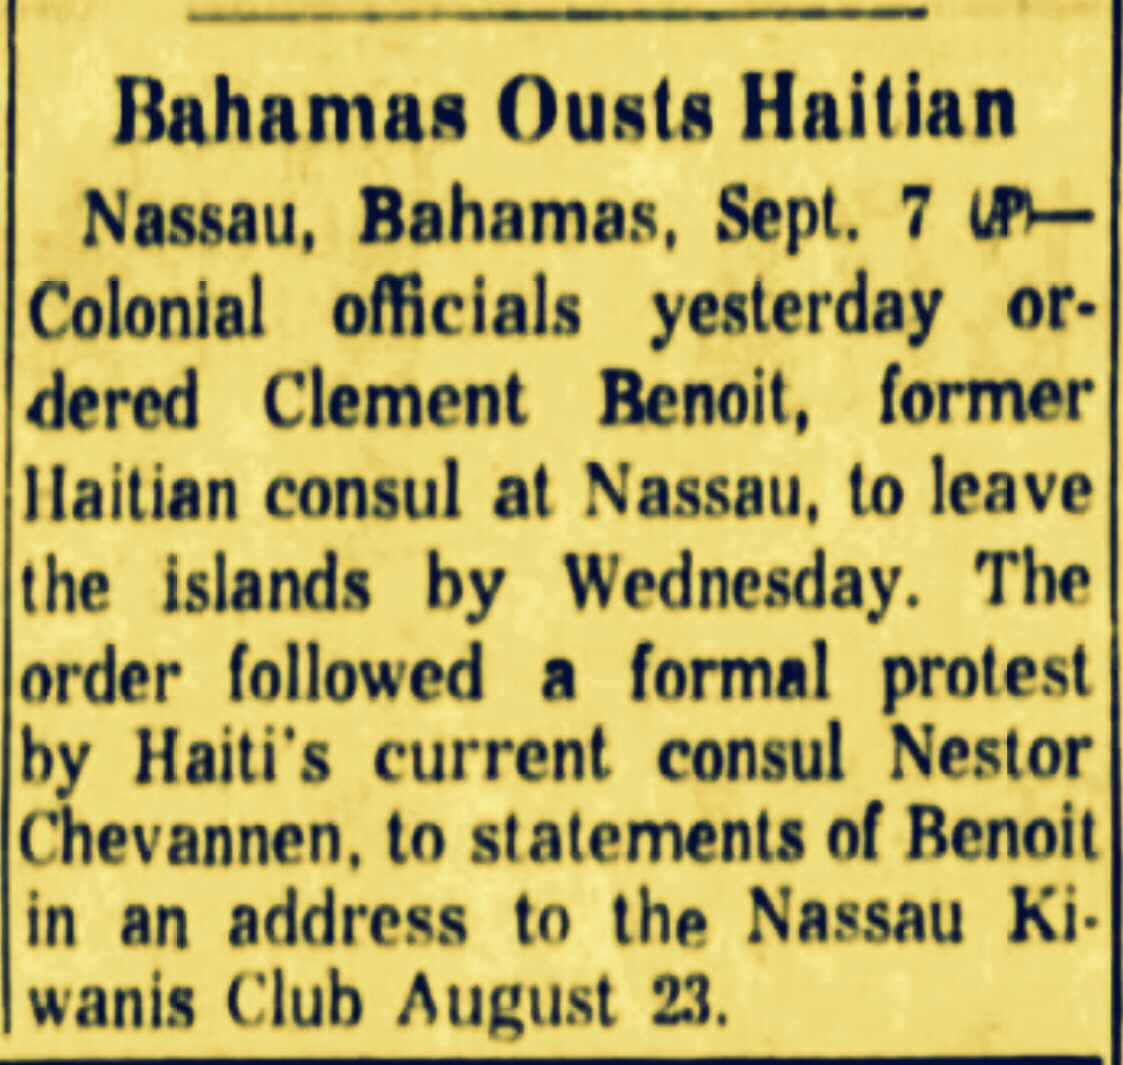 Haitian Revolutionary Party Manages To Assemble 3,000 Strong Force Under The Nose of the Bahamas Government 1963